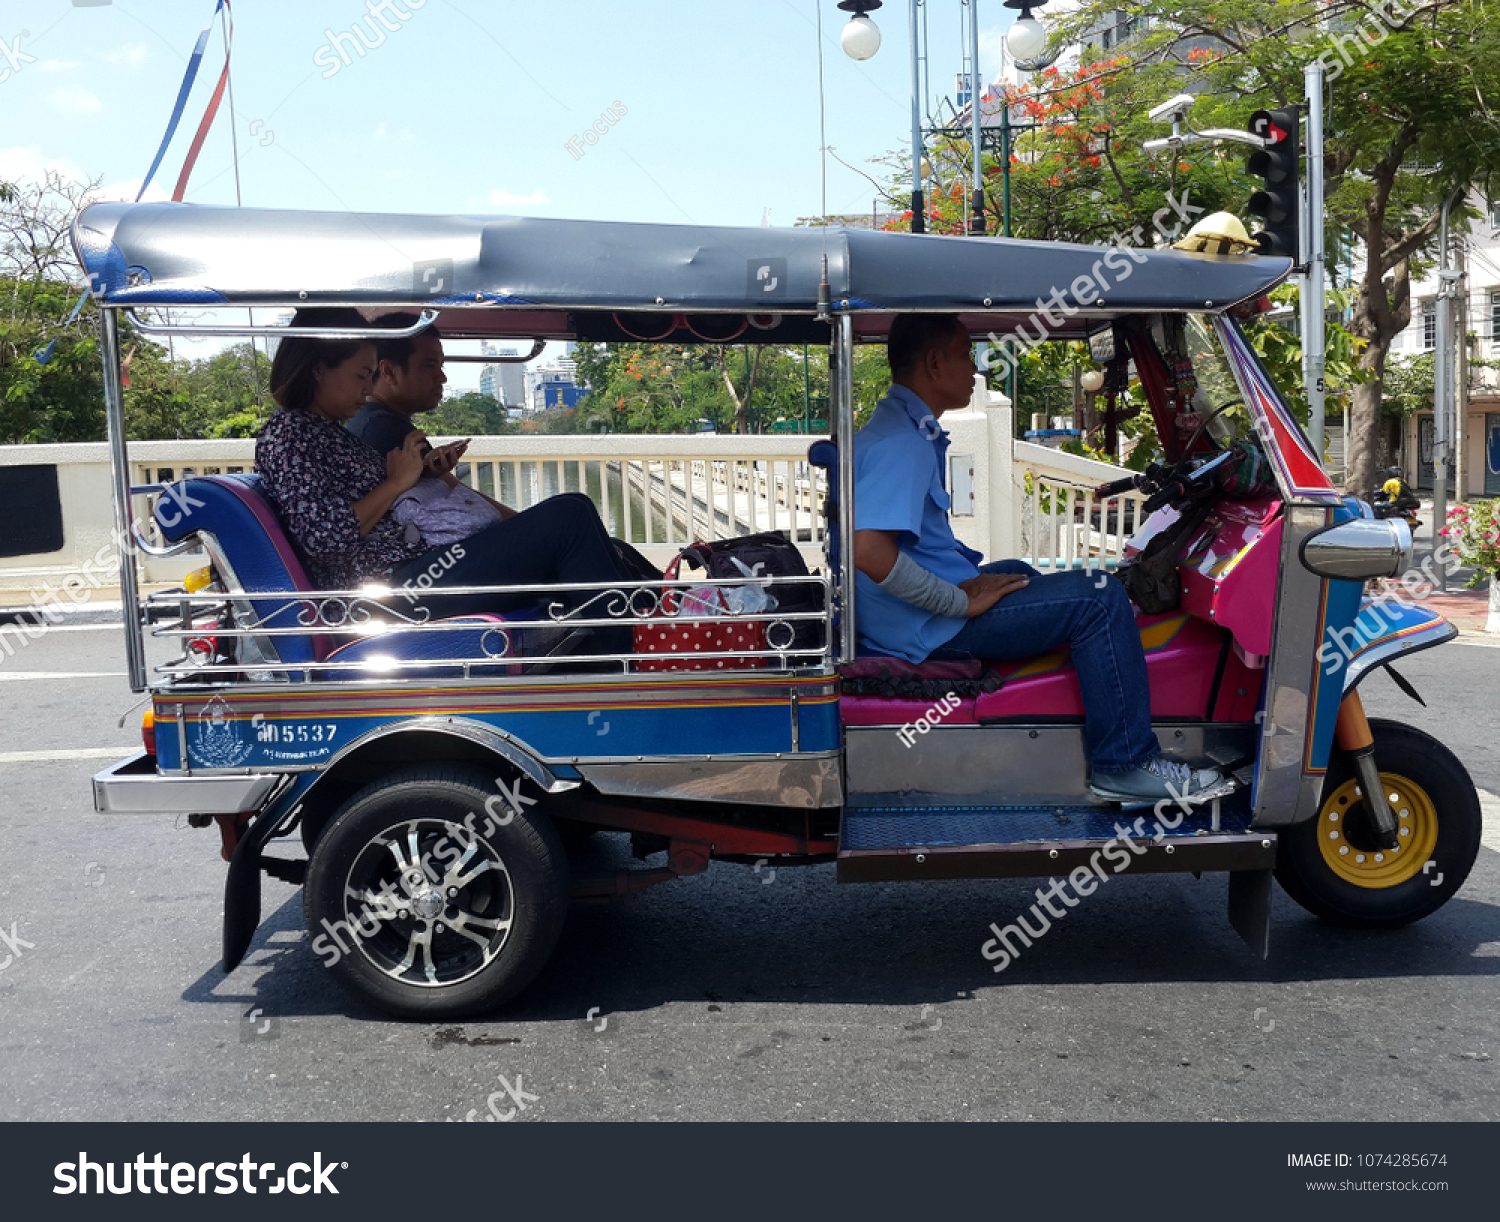 BANGKOK, THAILAND - APRIL 22, 2018: A couple sits in a popular type of transportation locally known as tuk tuk on April 22, 2018 in Thai capital Bangkok.